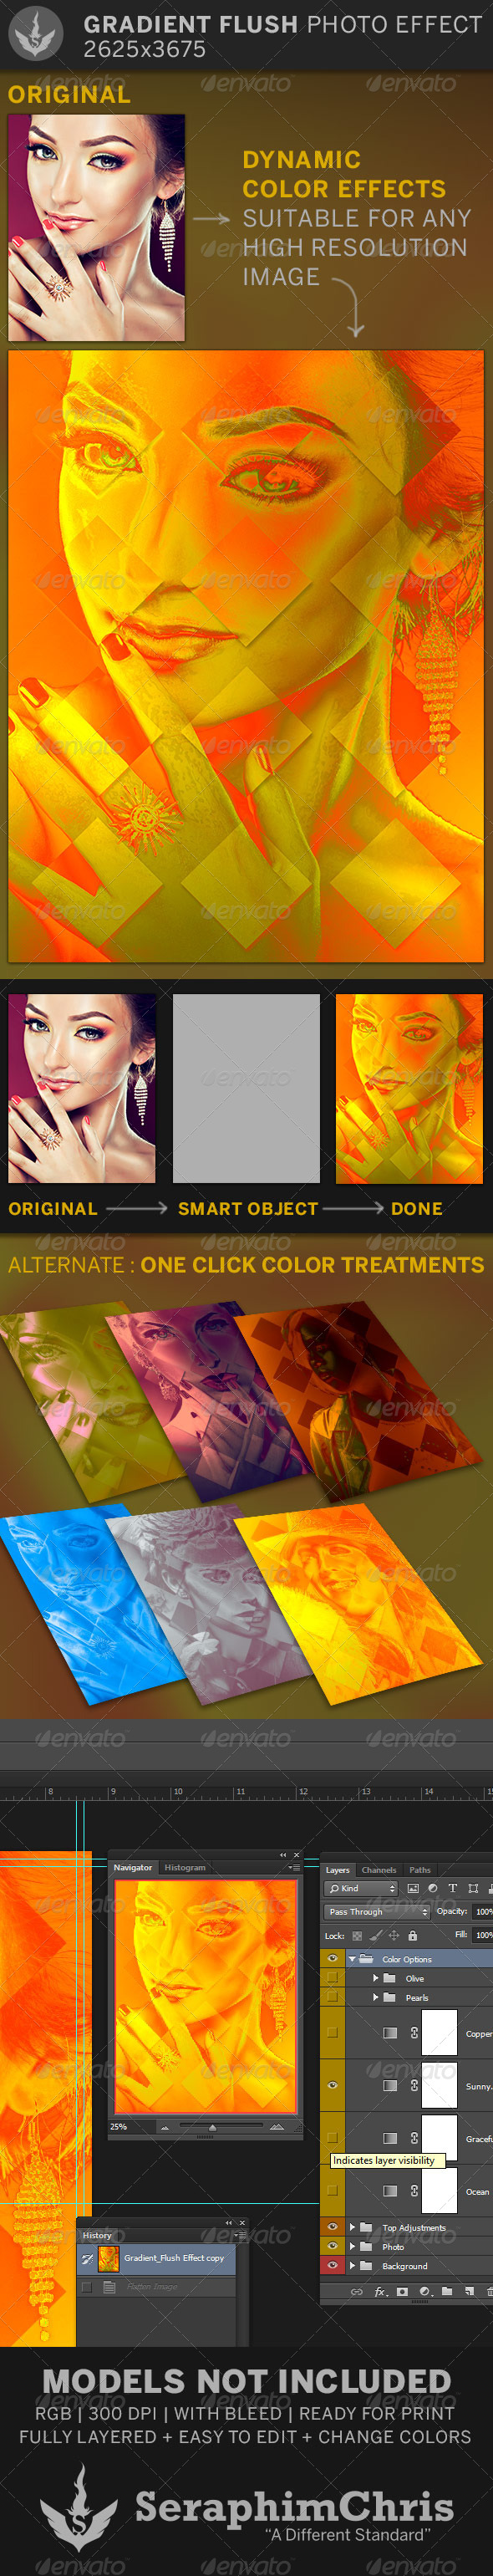 Gradient Flush 2 Photo Effect Template - Artistic Photo Templates